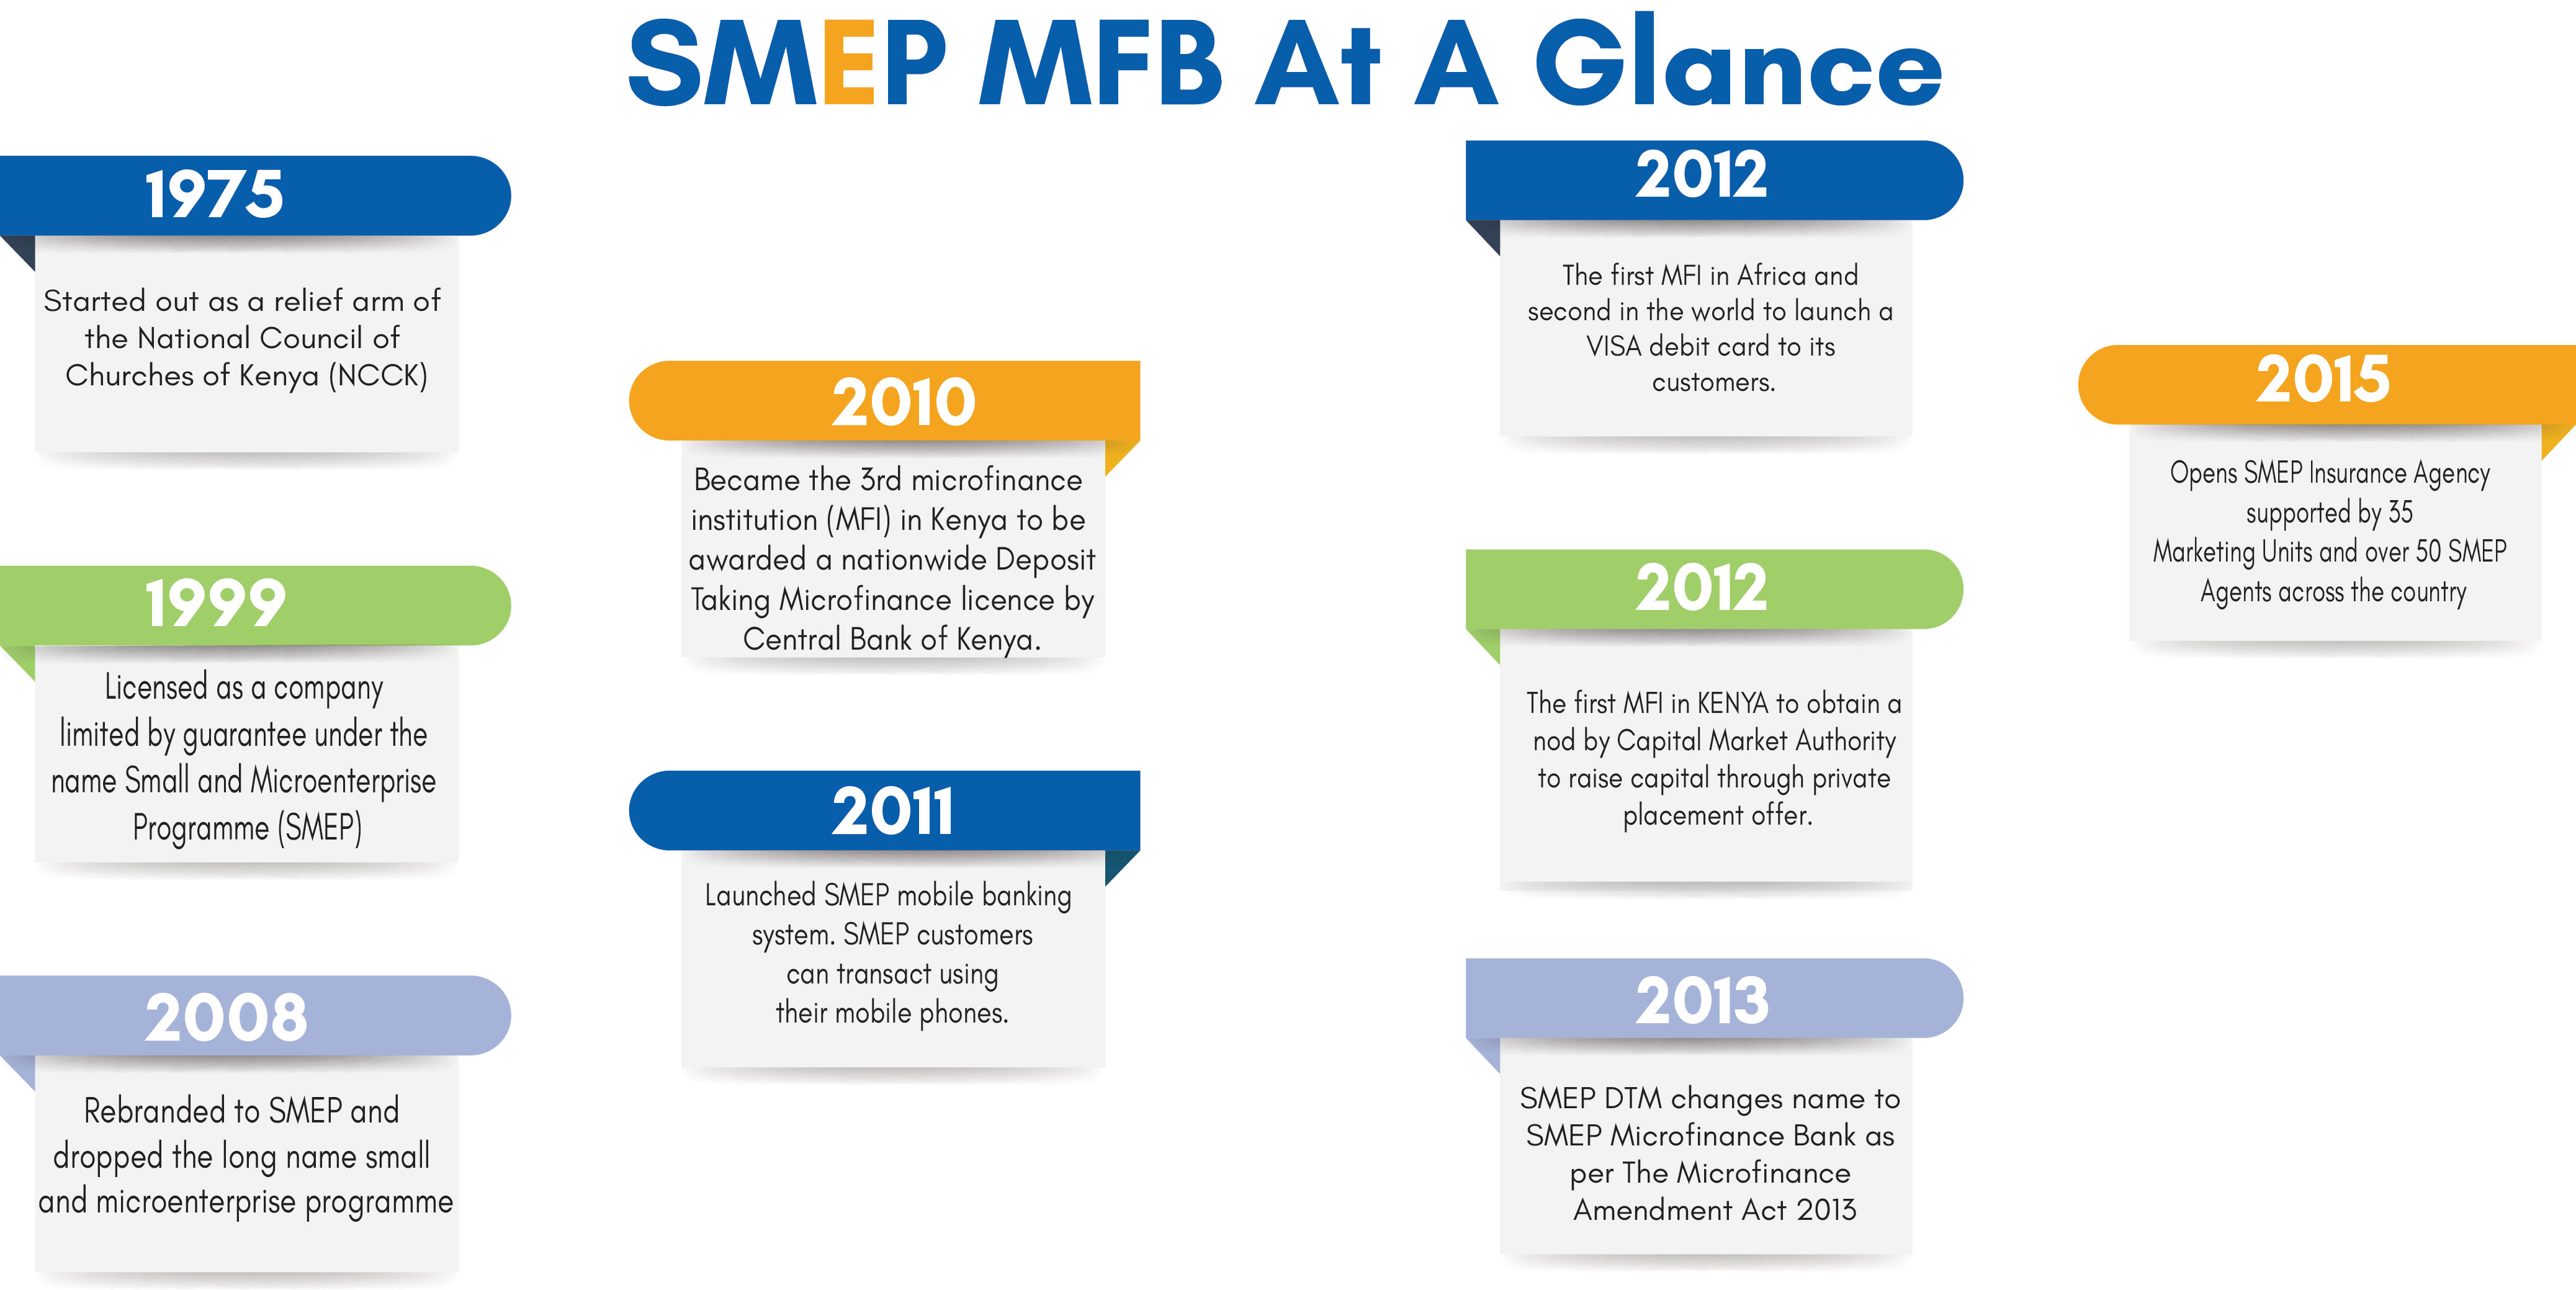 SMEP Microfinance Bank history at a glance